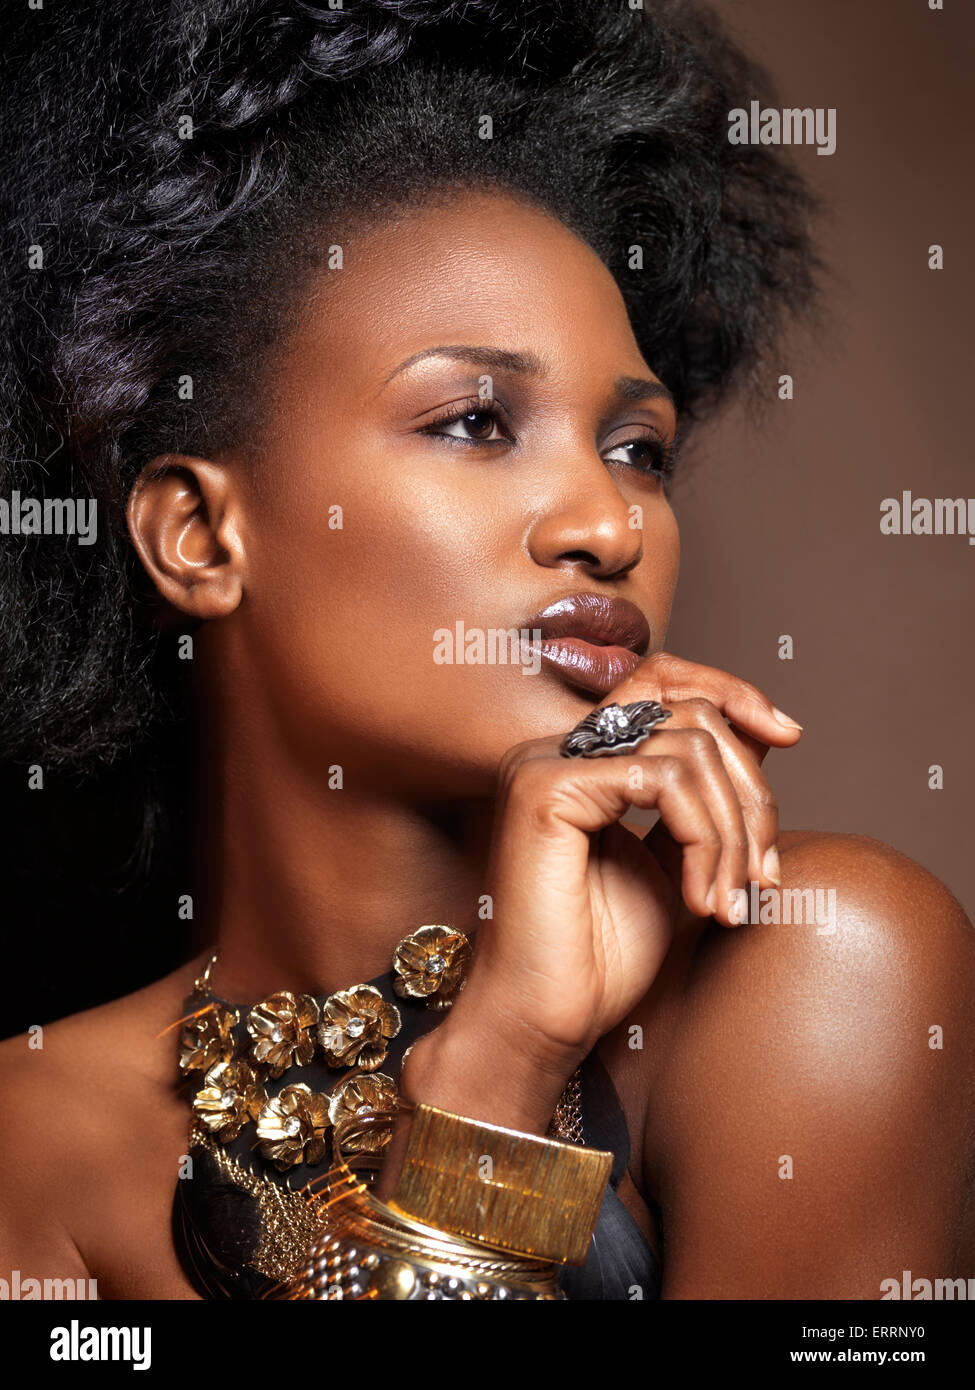 Beautiful young african american woman with big hair wearing jewelry, artistic beauty portrait on brown background - Stock Image